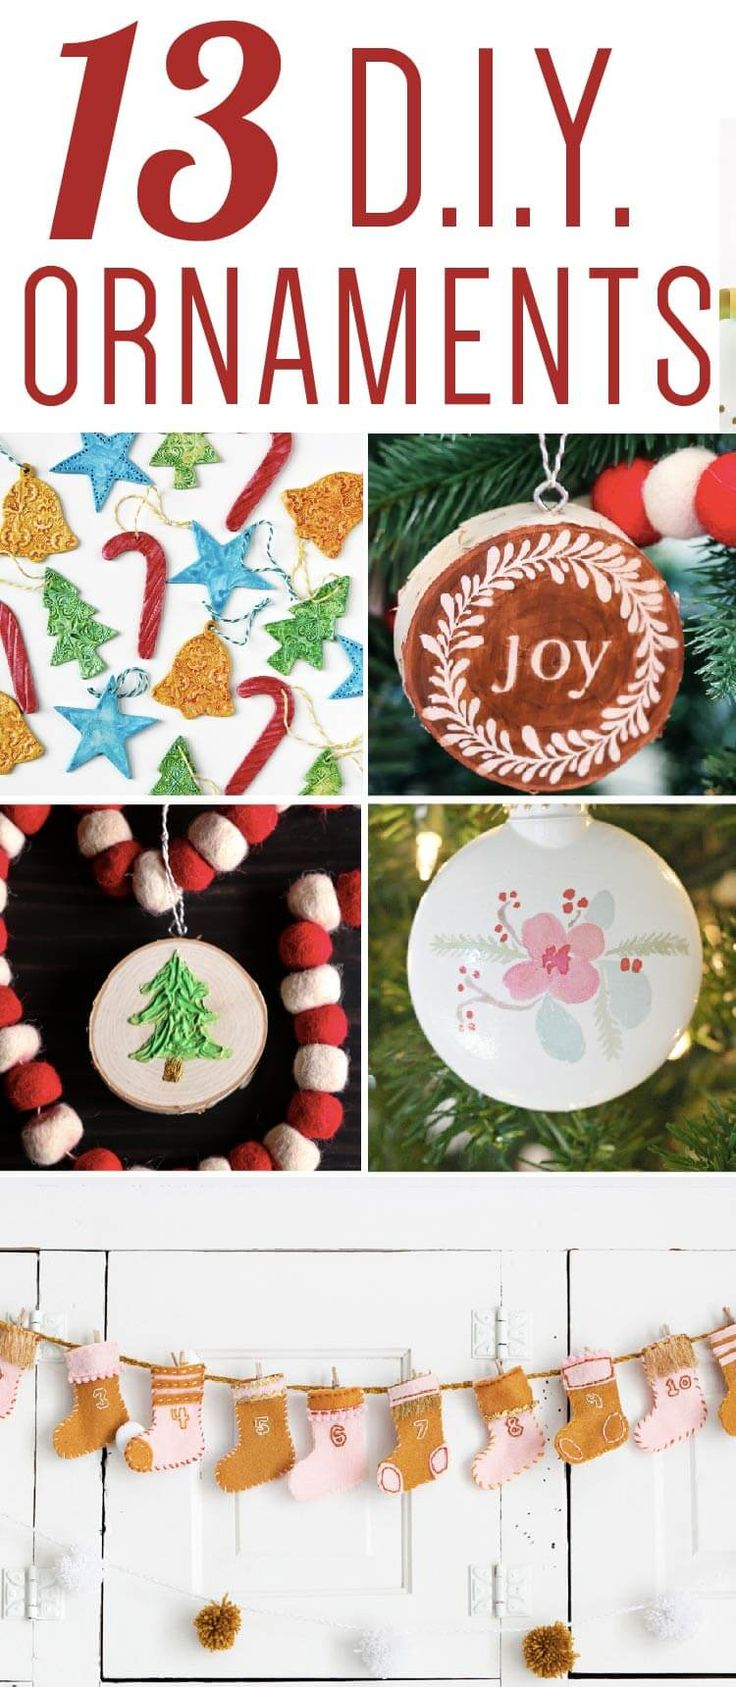 Looking for christmas ornaments - Omg Love This List Of Unique Christmas Ornaments That I Can Make Myself Especially